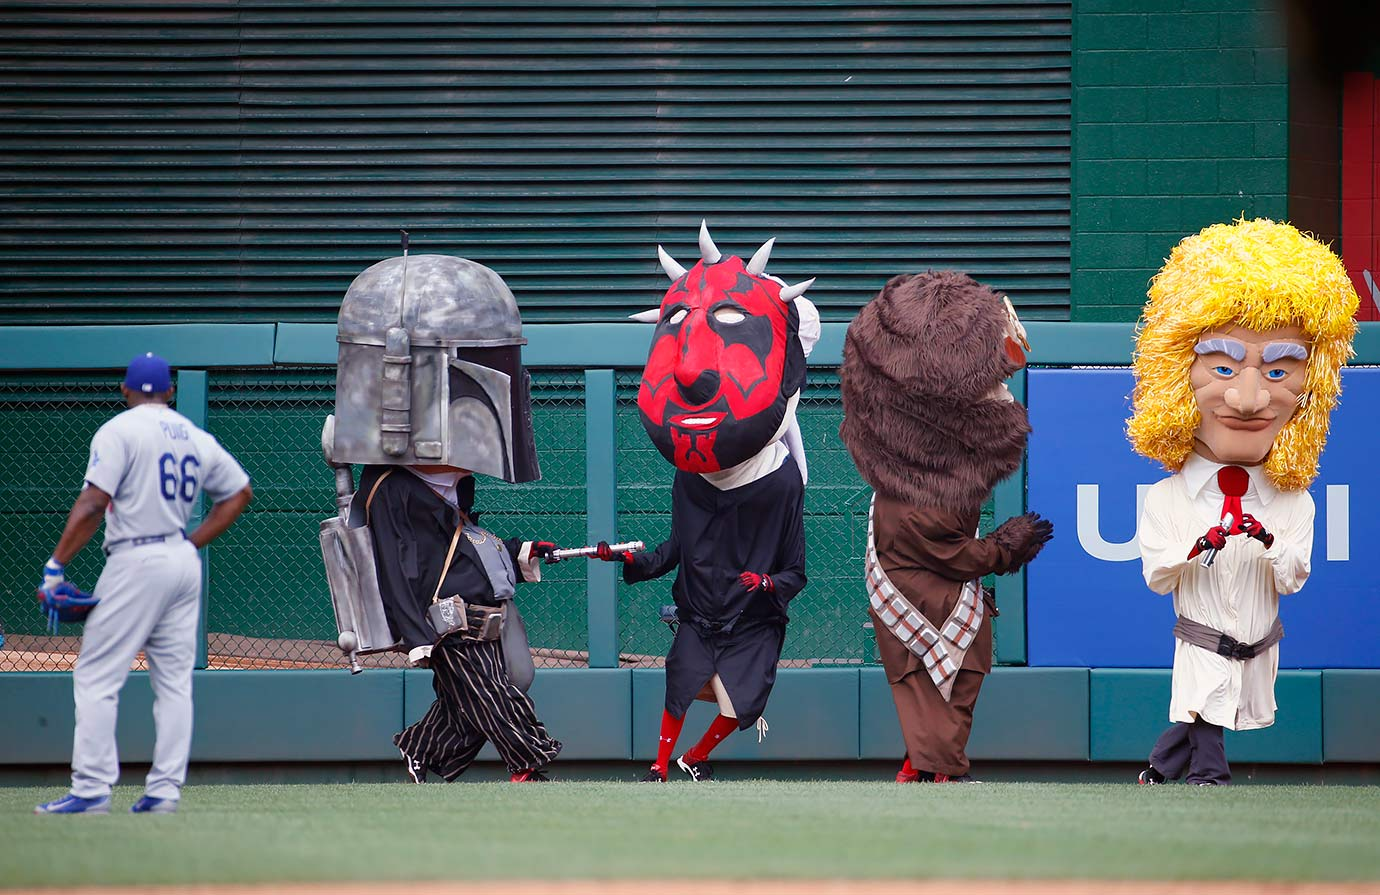 Los Angeles Dodgers right fielder Yasiel Puig watches the Washington Nationals Presidents Race mascots dressed as Star Wars characters during the game on July 19, 2015 at Nationals Park in Washington, D.C.